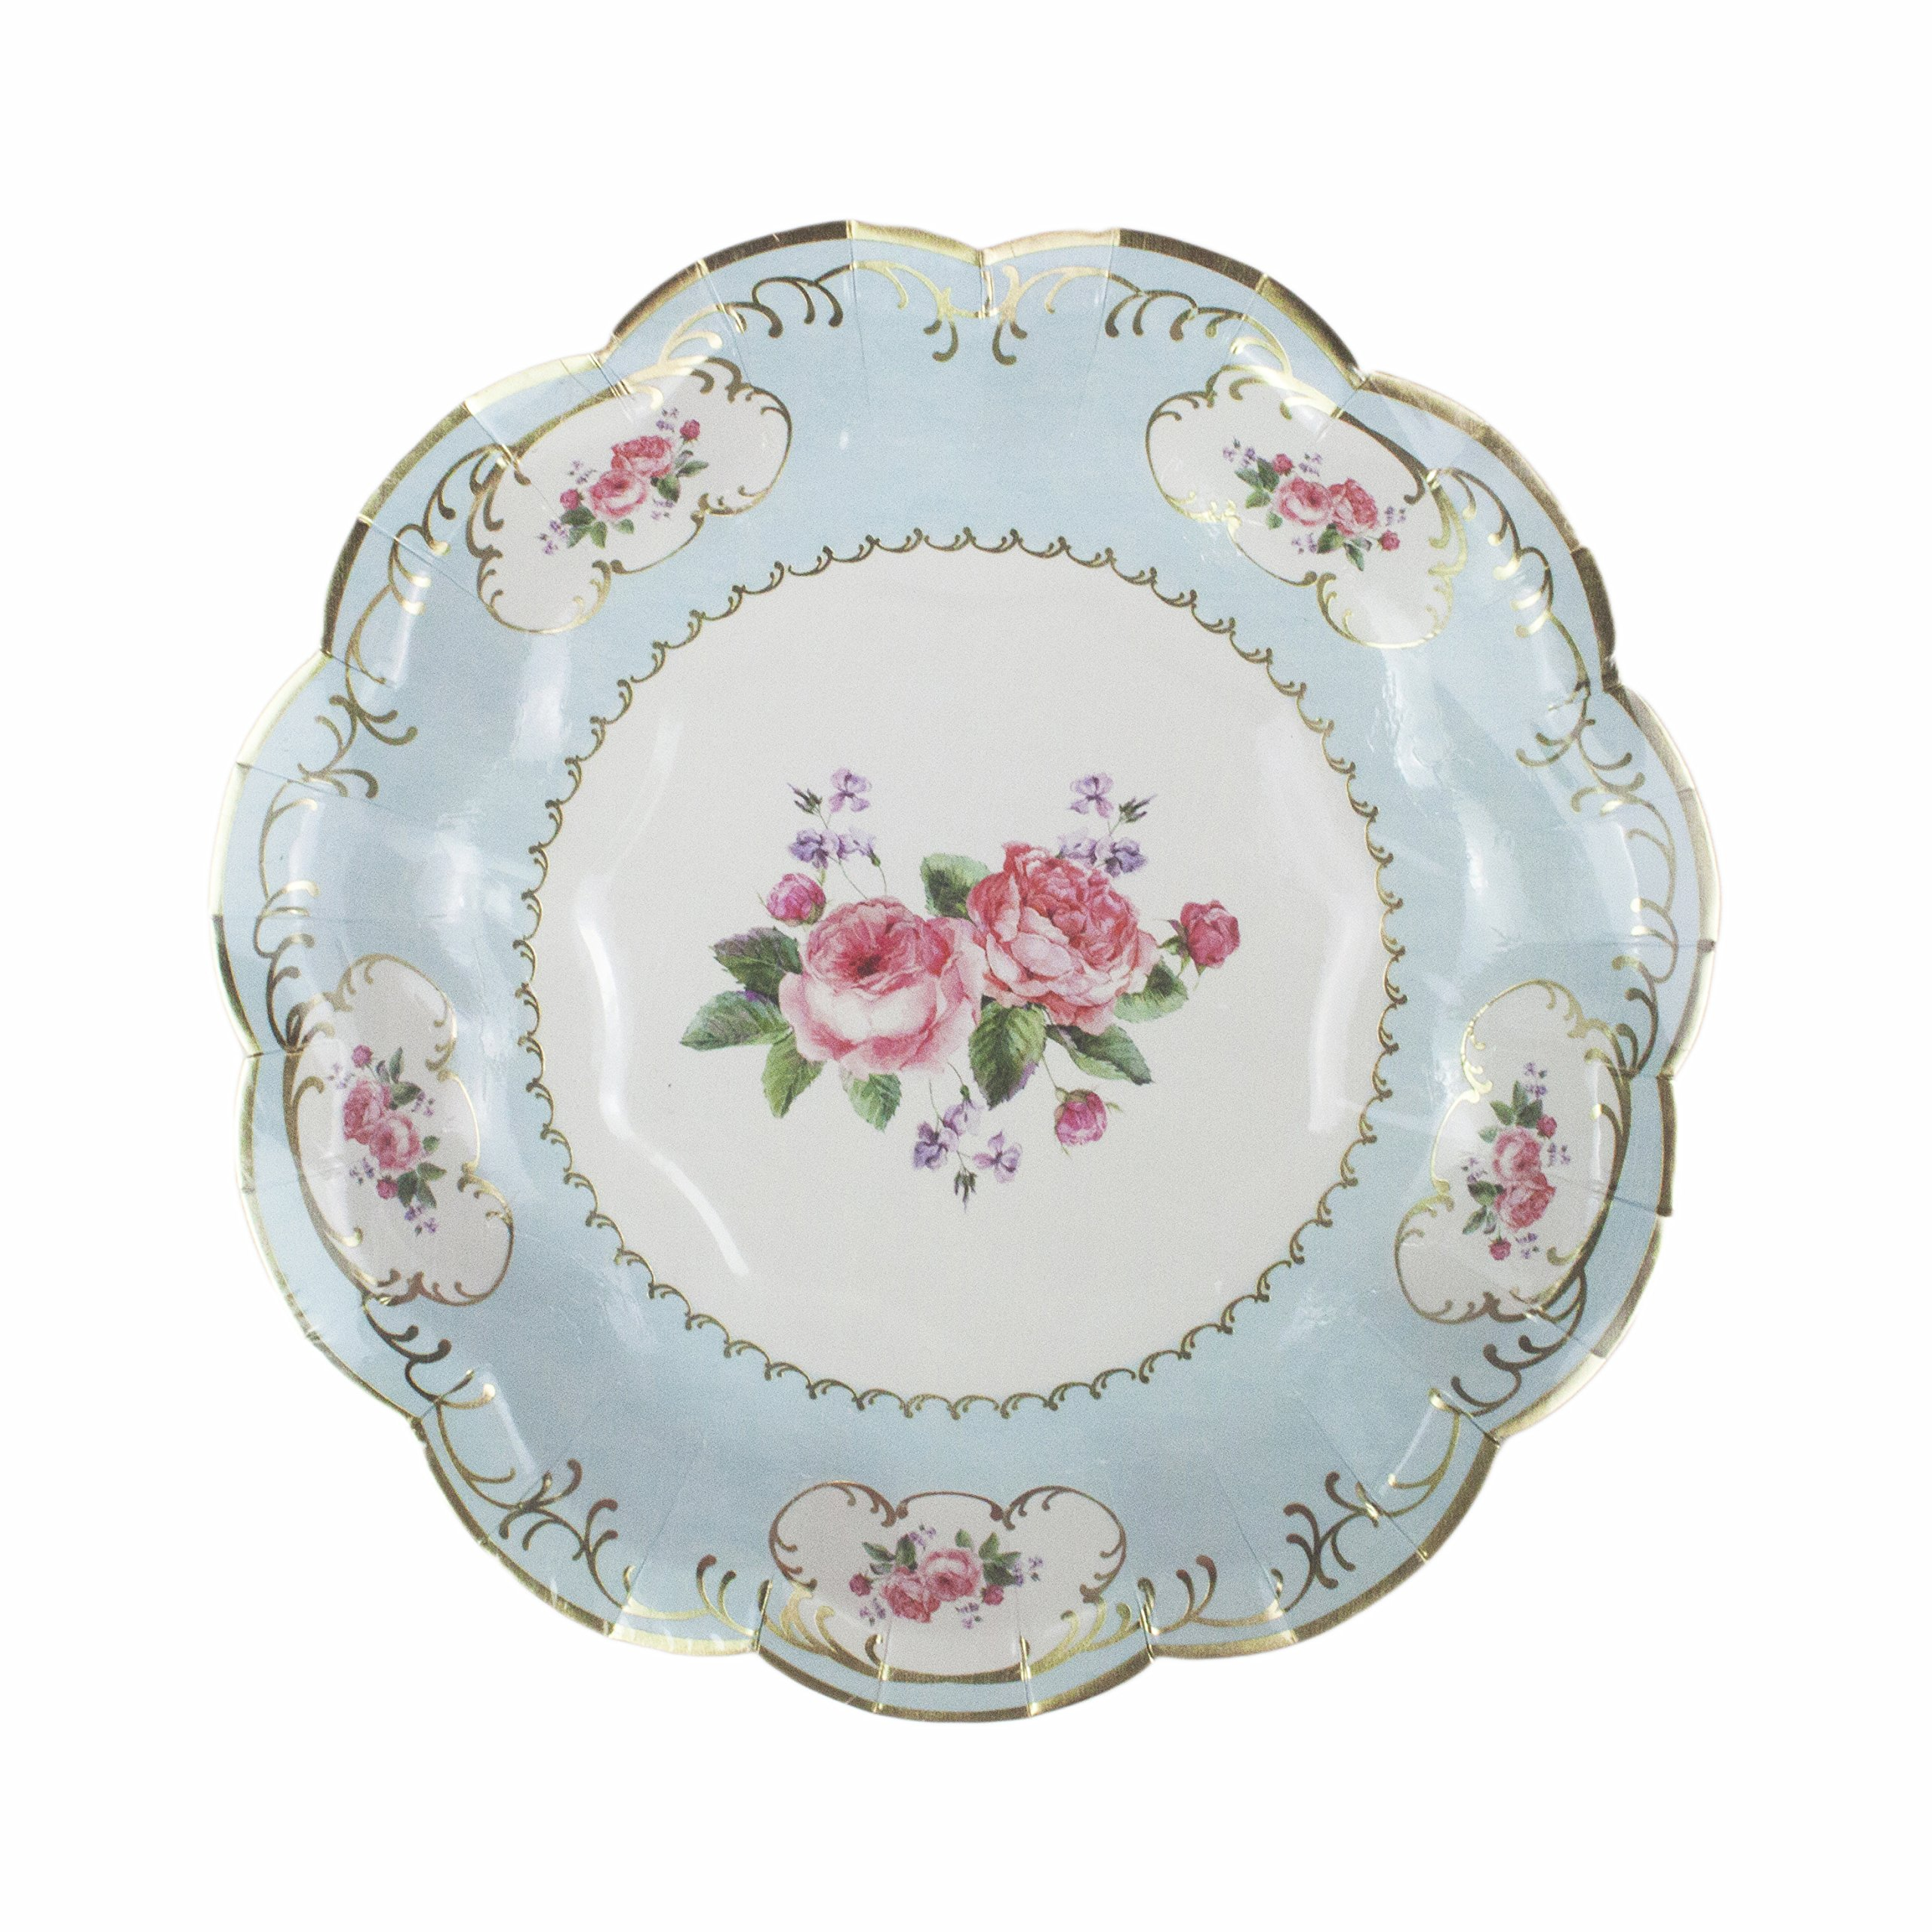 Talking Tables Truly Chintz, Paper Plates, 18cm (12 pack in 4 designs) by Talking Tables